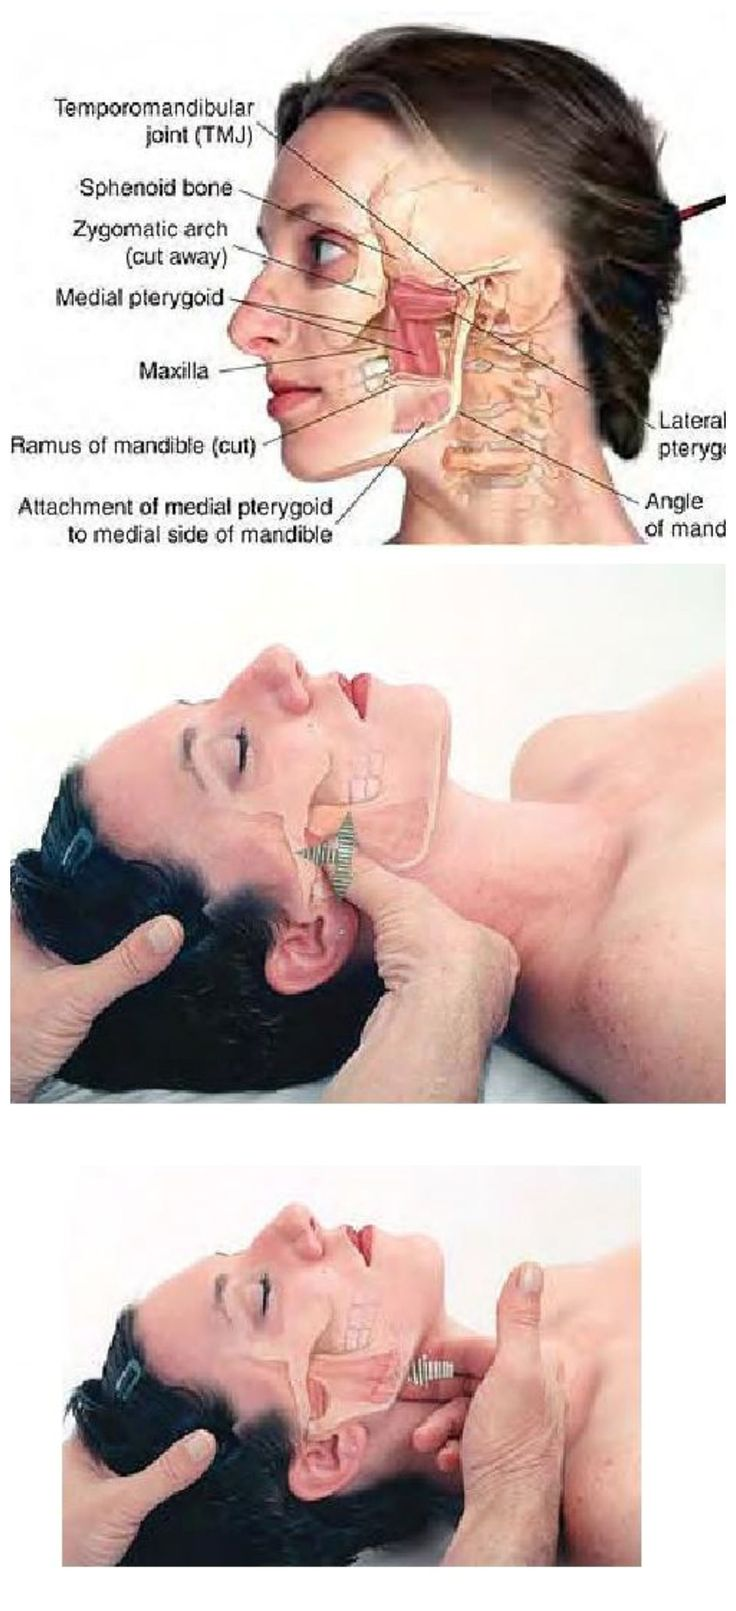 Massage Therapy ..........TMJ syndrome can be relieved through examination and treatment of the lateral and medial of the pterygoid muscles.......The Pterygoids are jaw (temporomandibular joint, or TMJ) muscles that radiate in a winglike pattern .....Kur <3